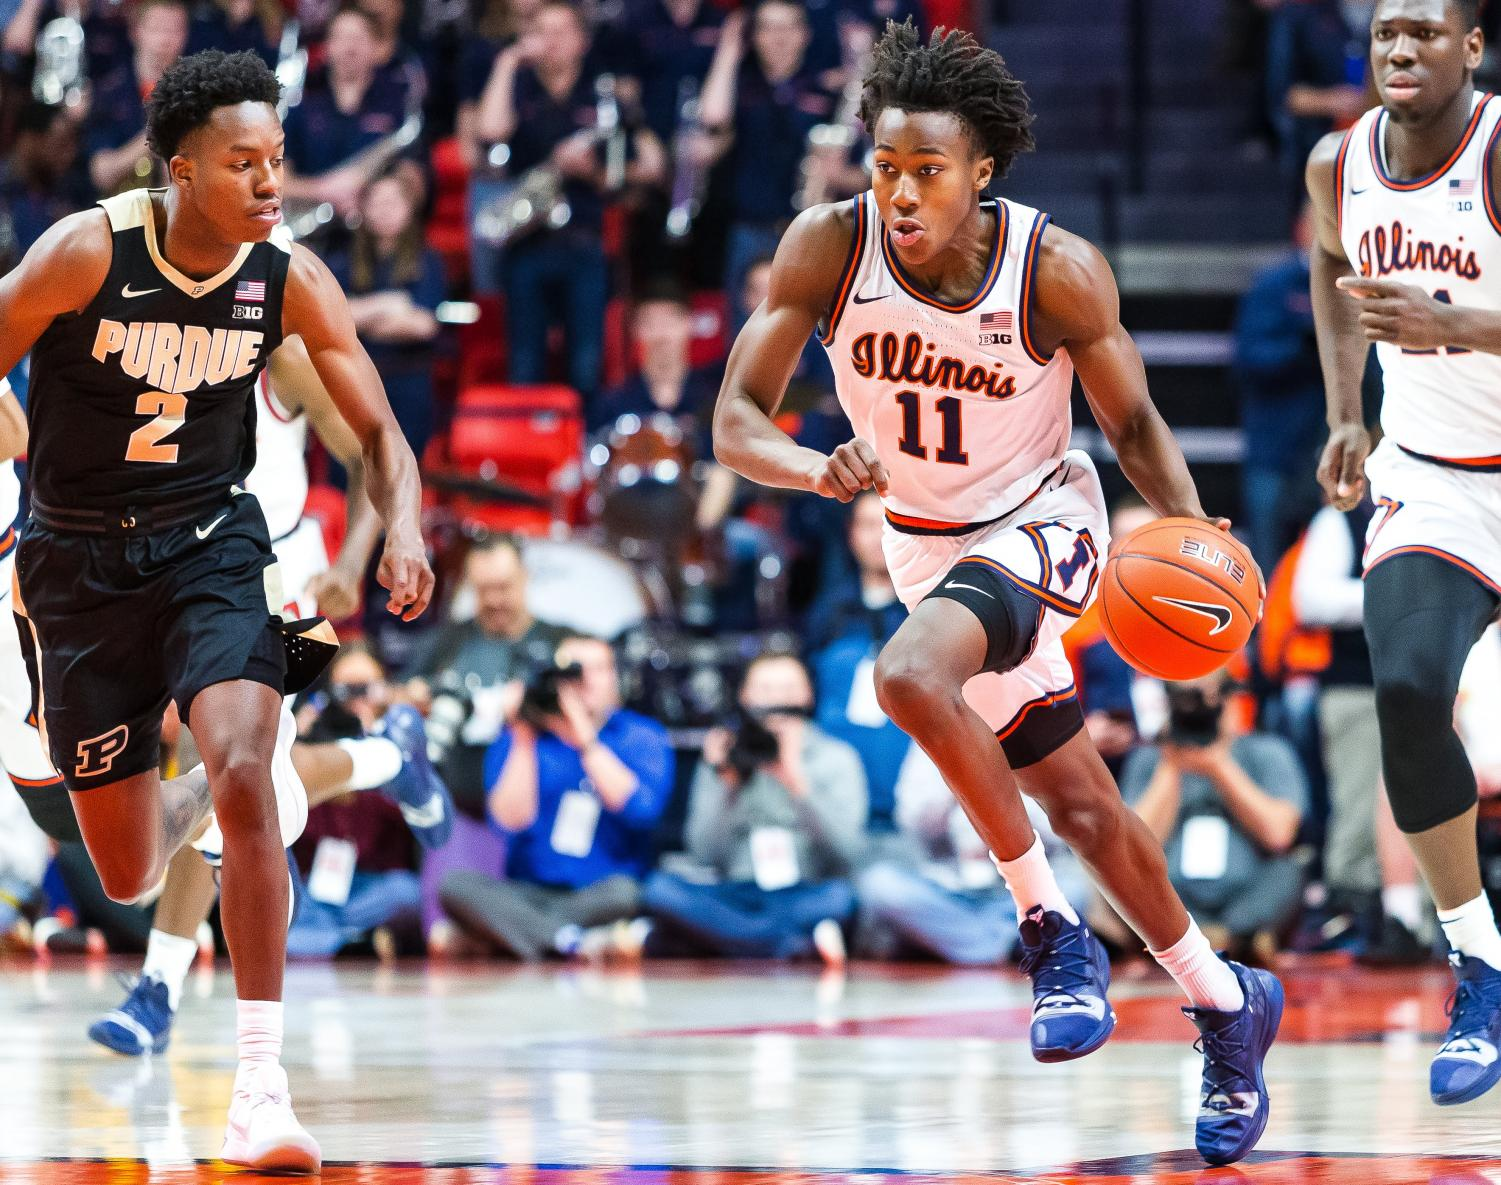 Sophomore Ayo Dosunmu dribbles past a Purdue player during the Illini's game against the Boilermakers at the State Farm Center Jan. 5. Photo by Jonathan Bonaguro.